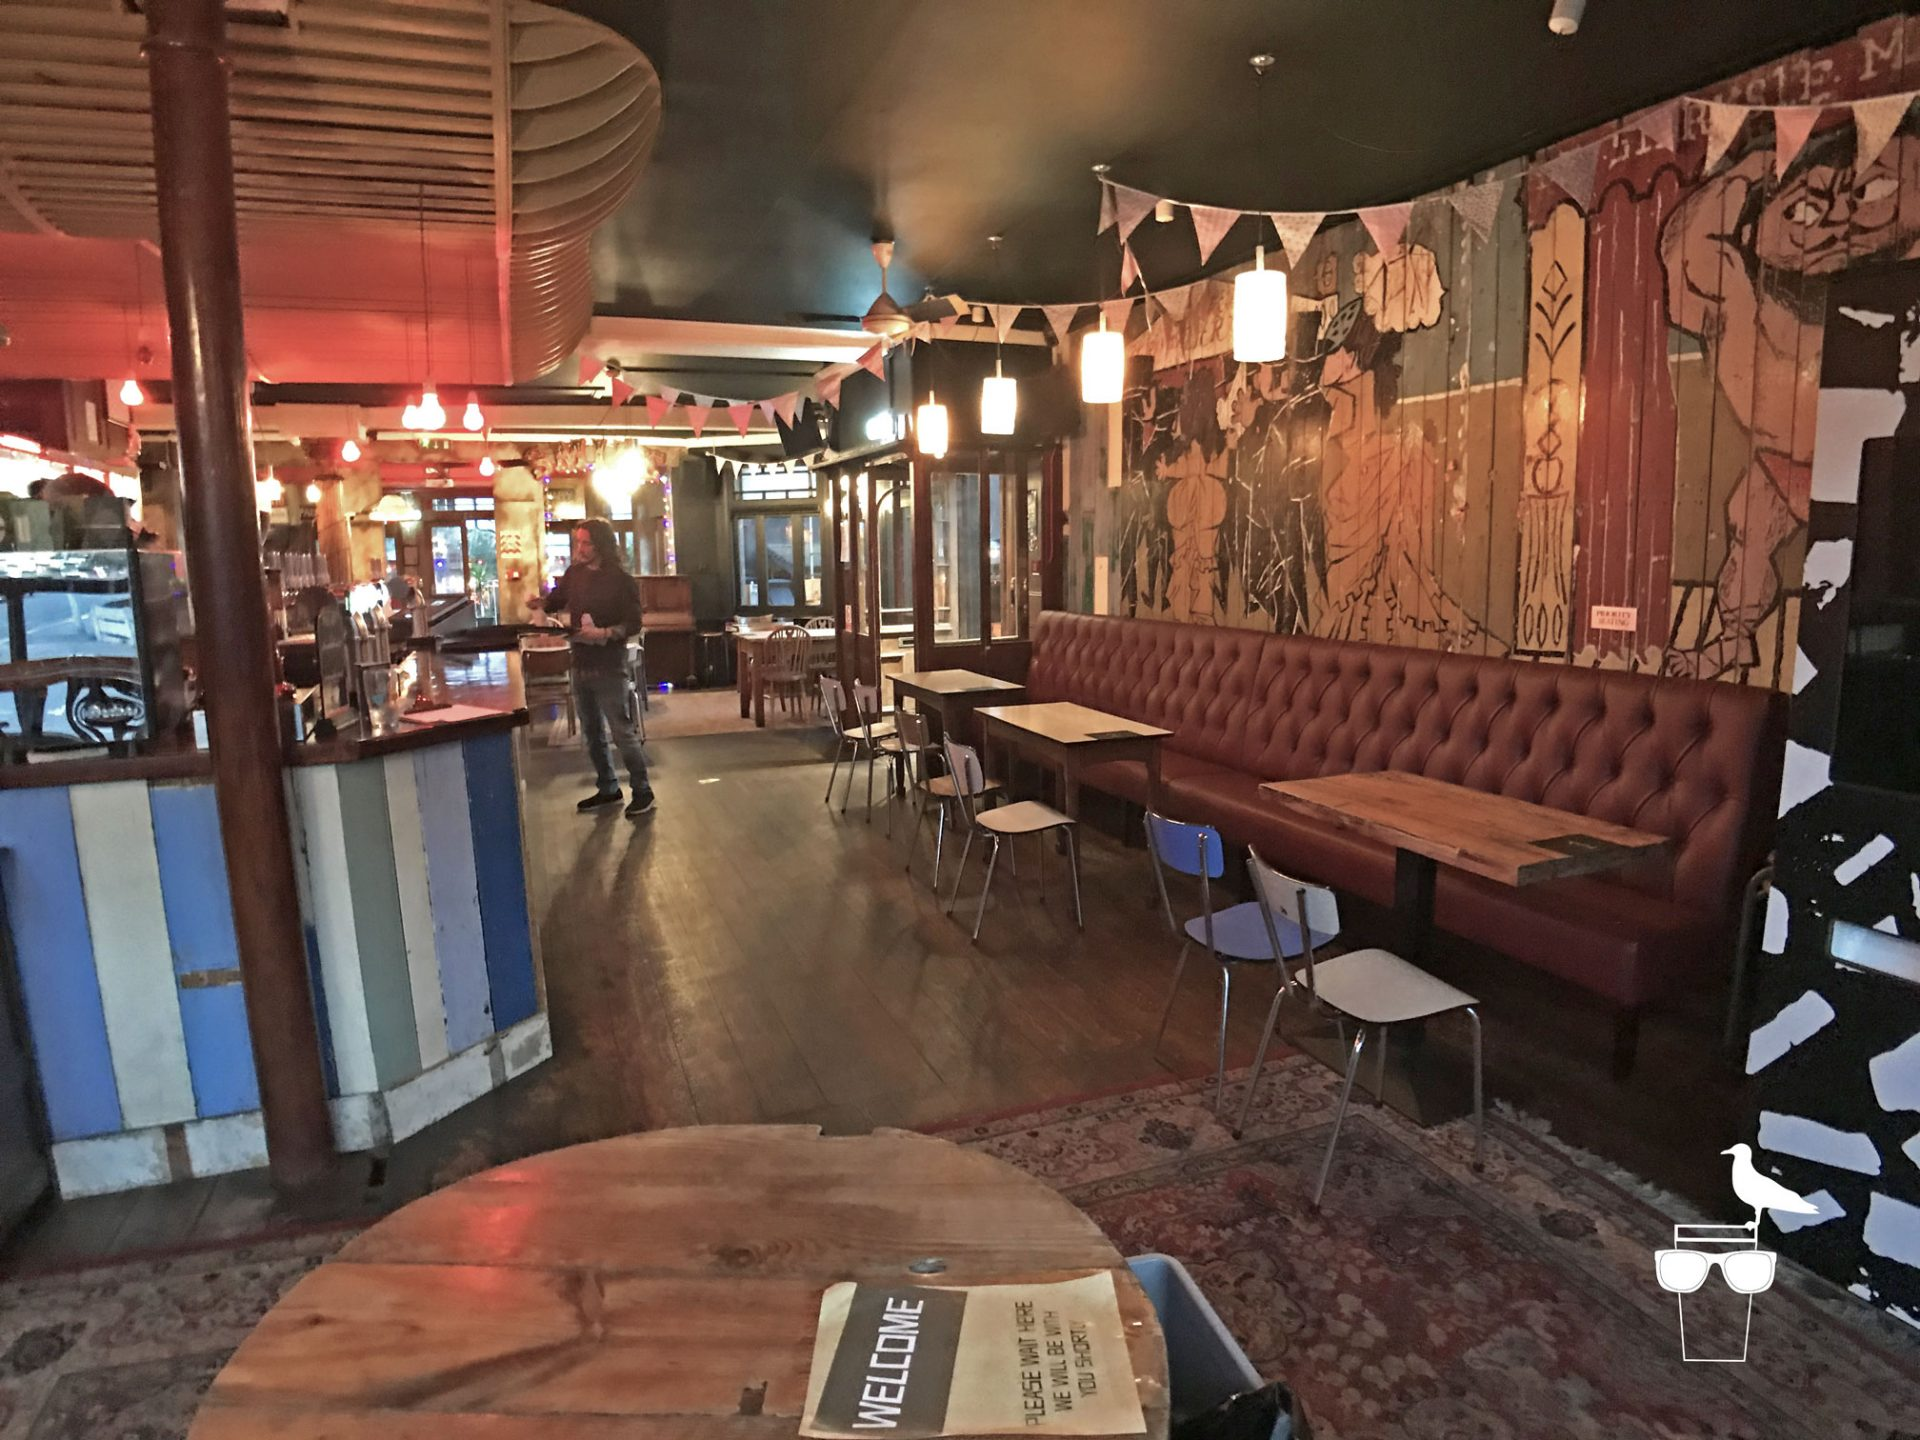 sidewinder-brighton-inside-wide-view-of-bar-2